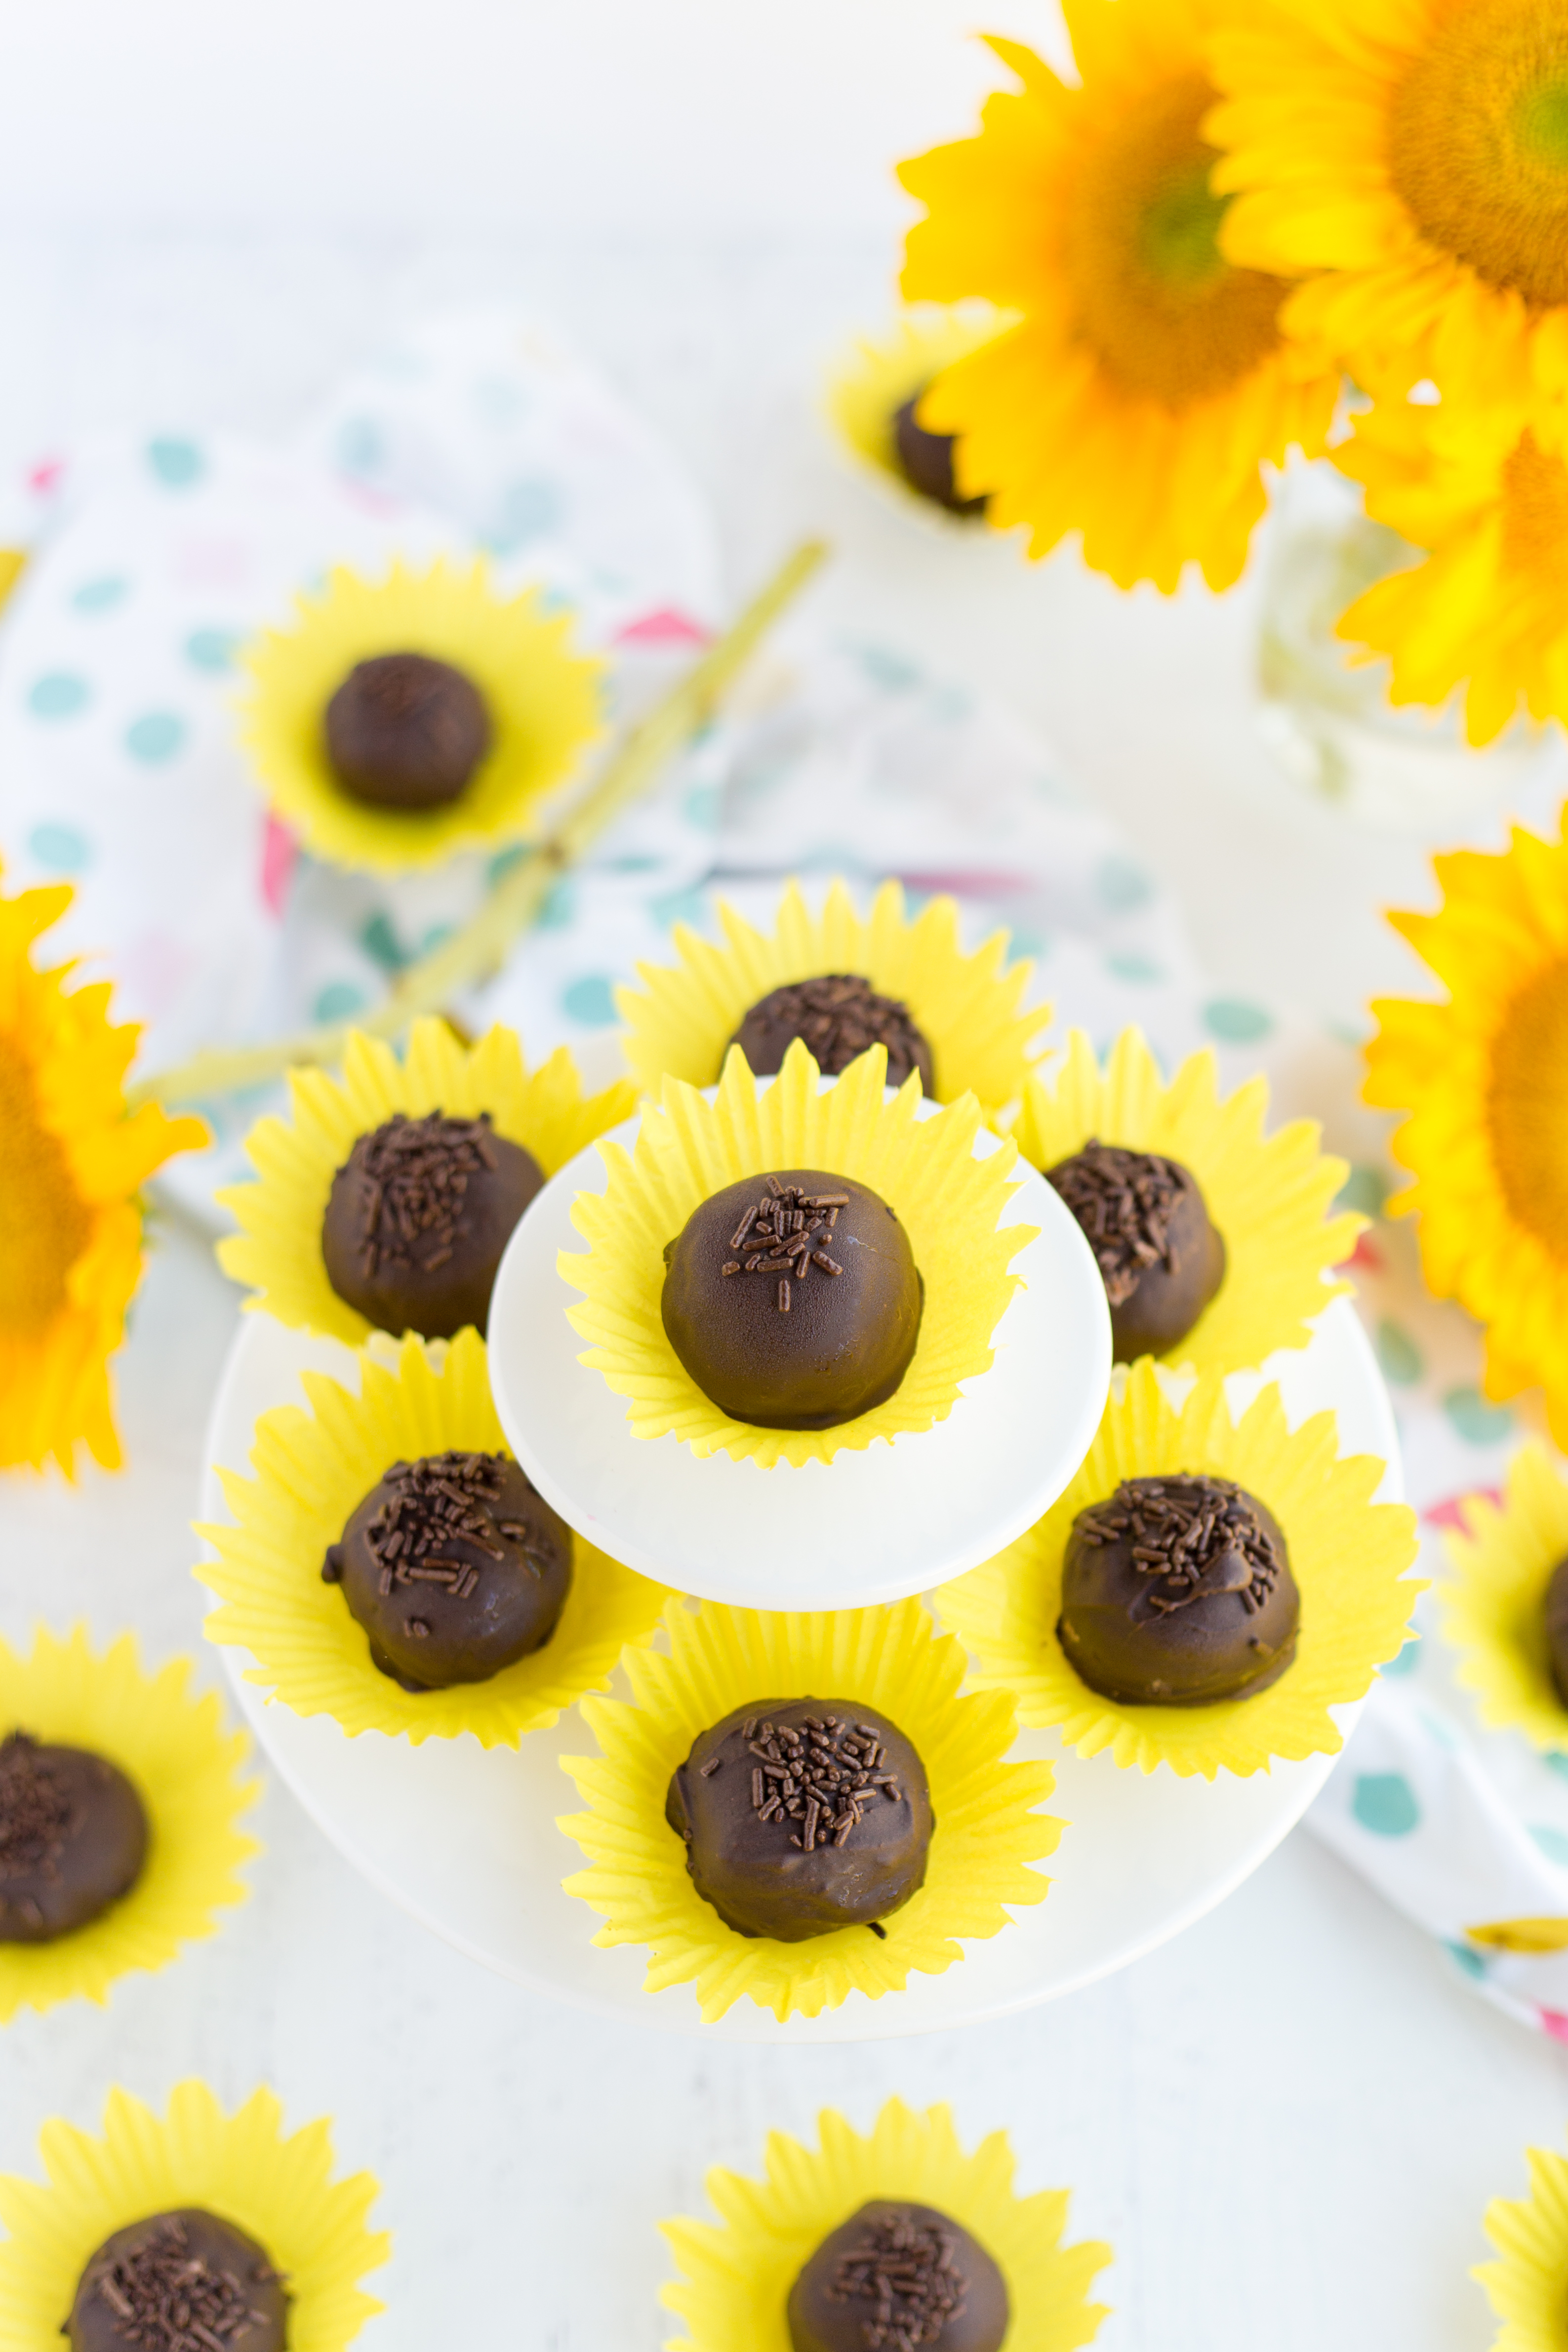 Bon Bons in Sunflower Cupcake Liners